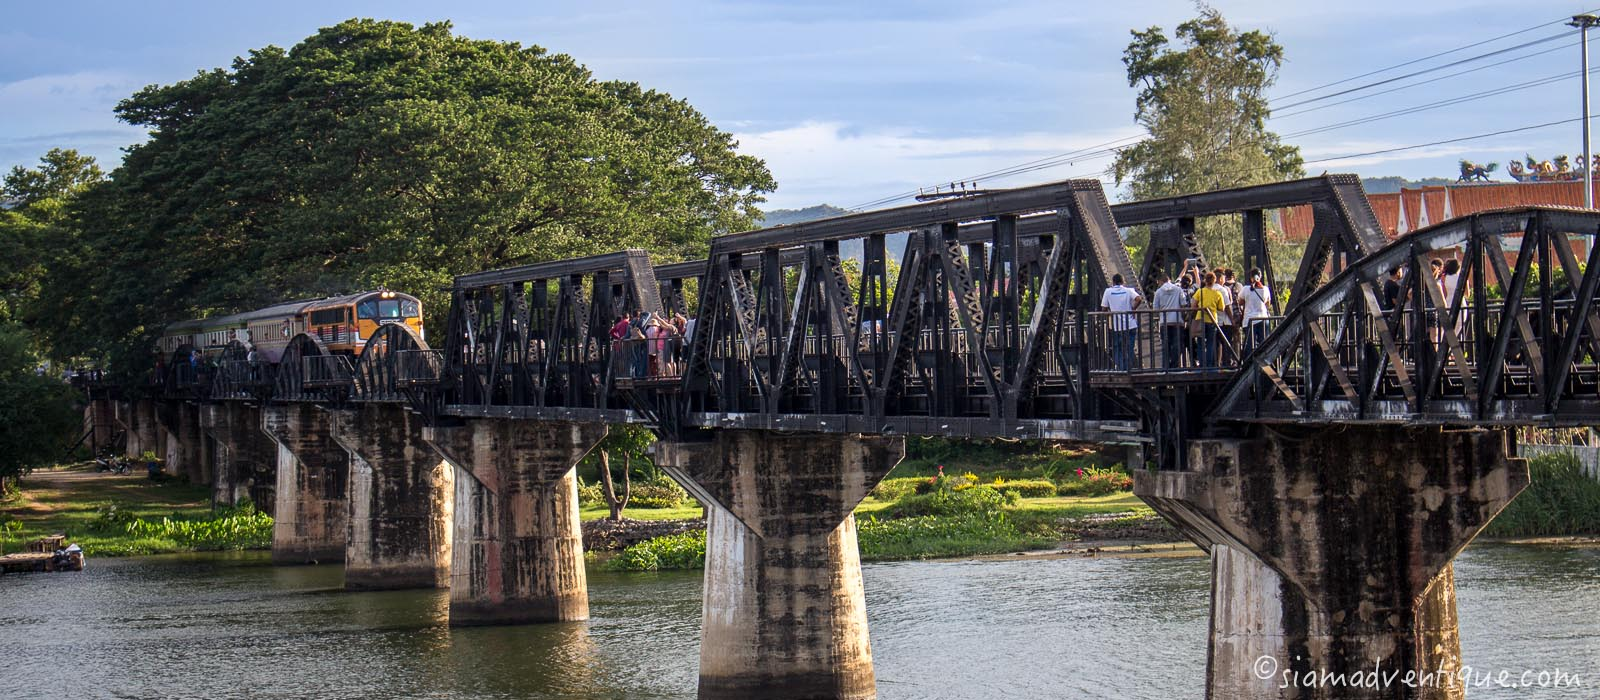 Bridge over the River Khwae in Kanchanaburi